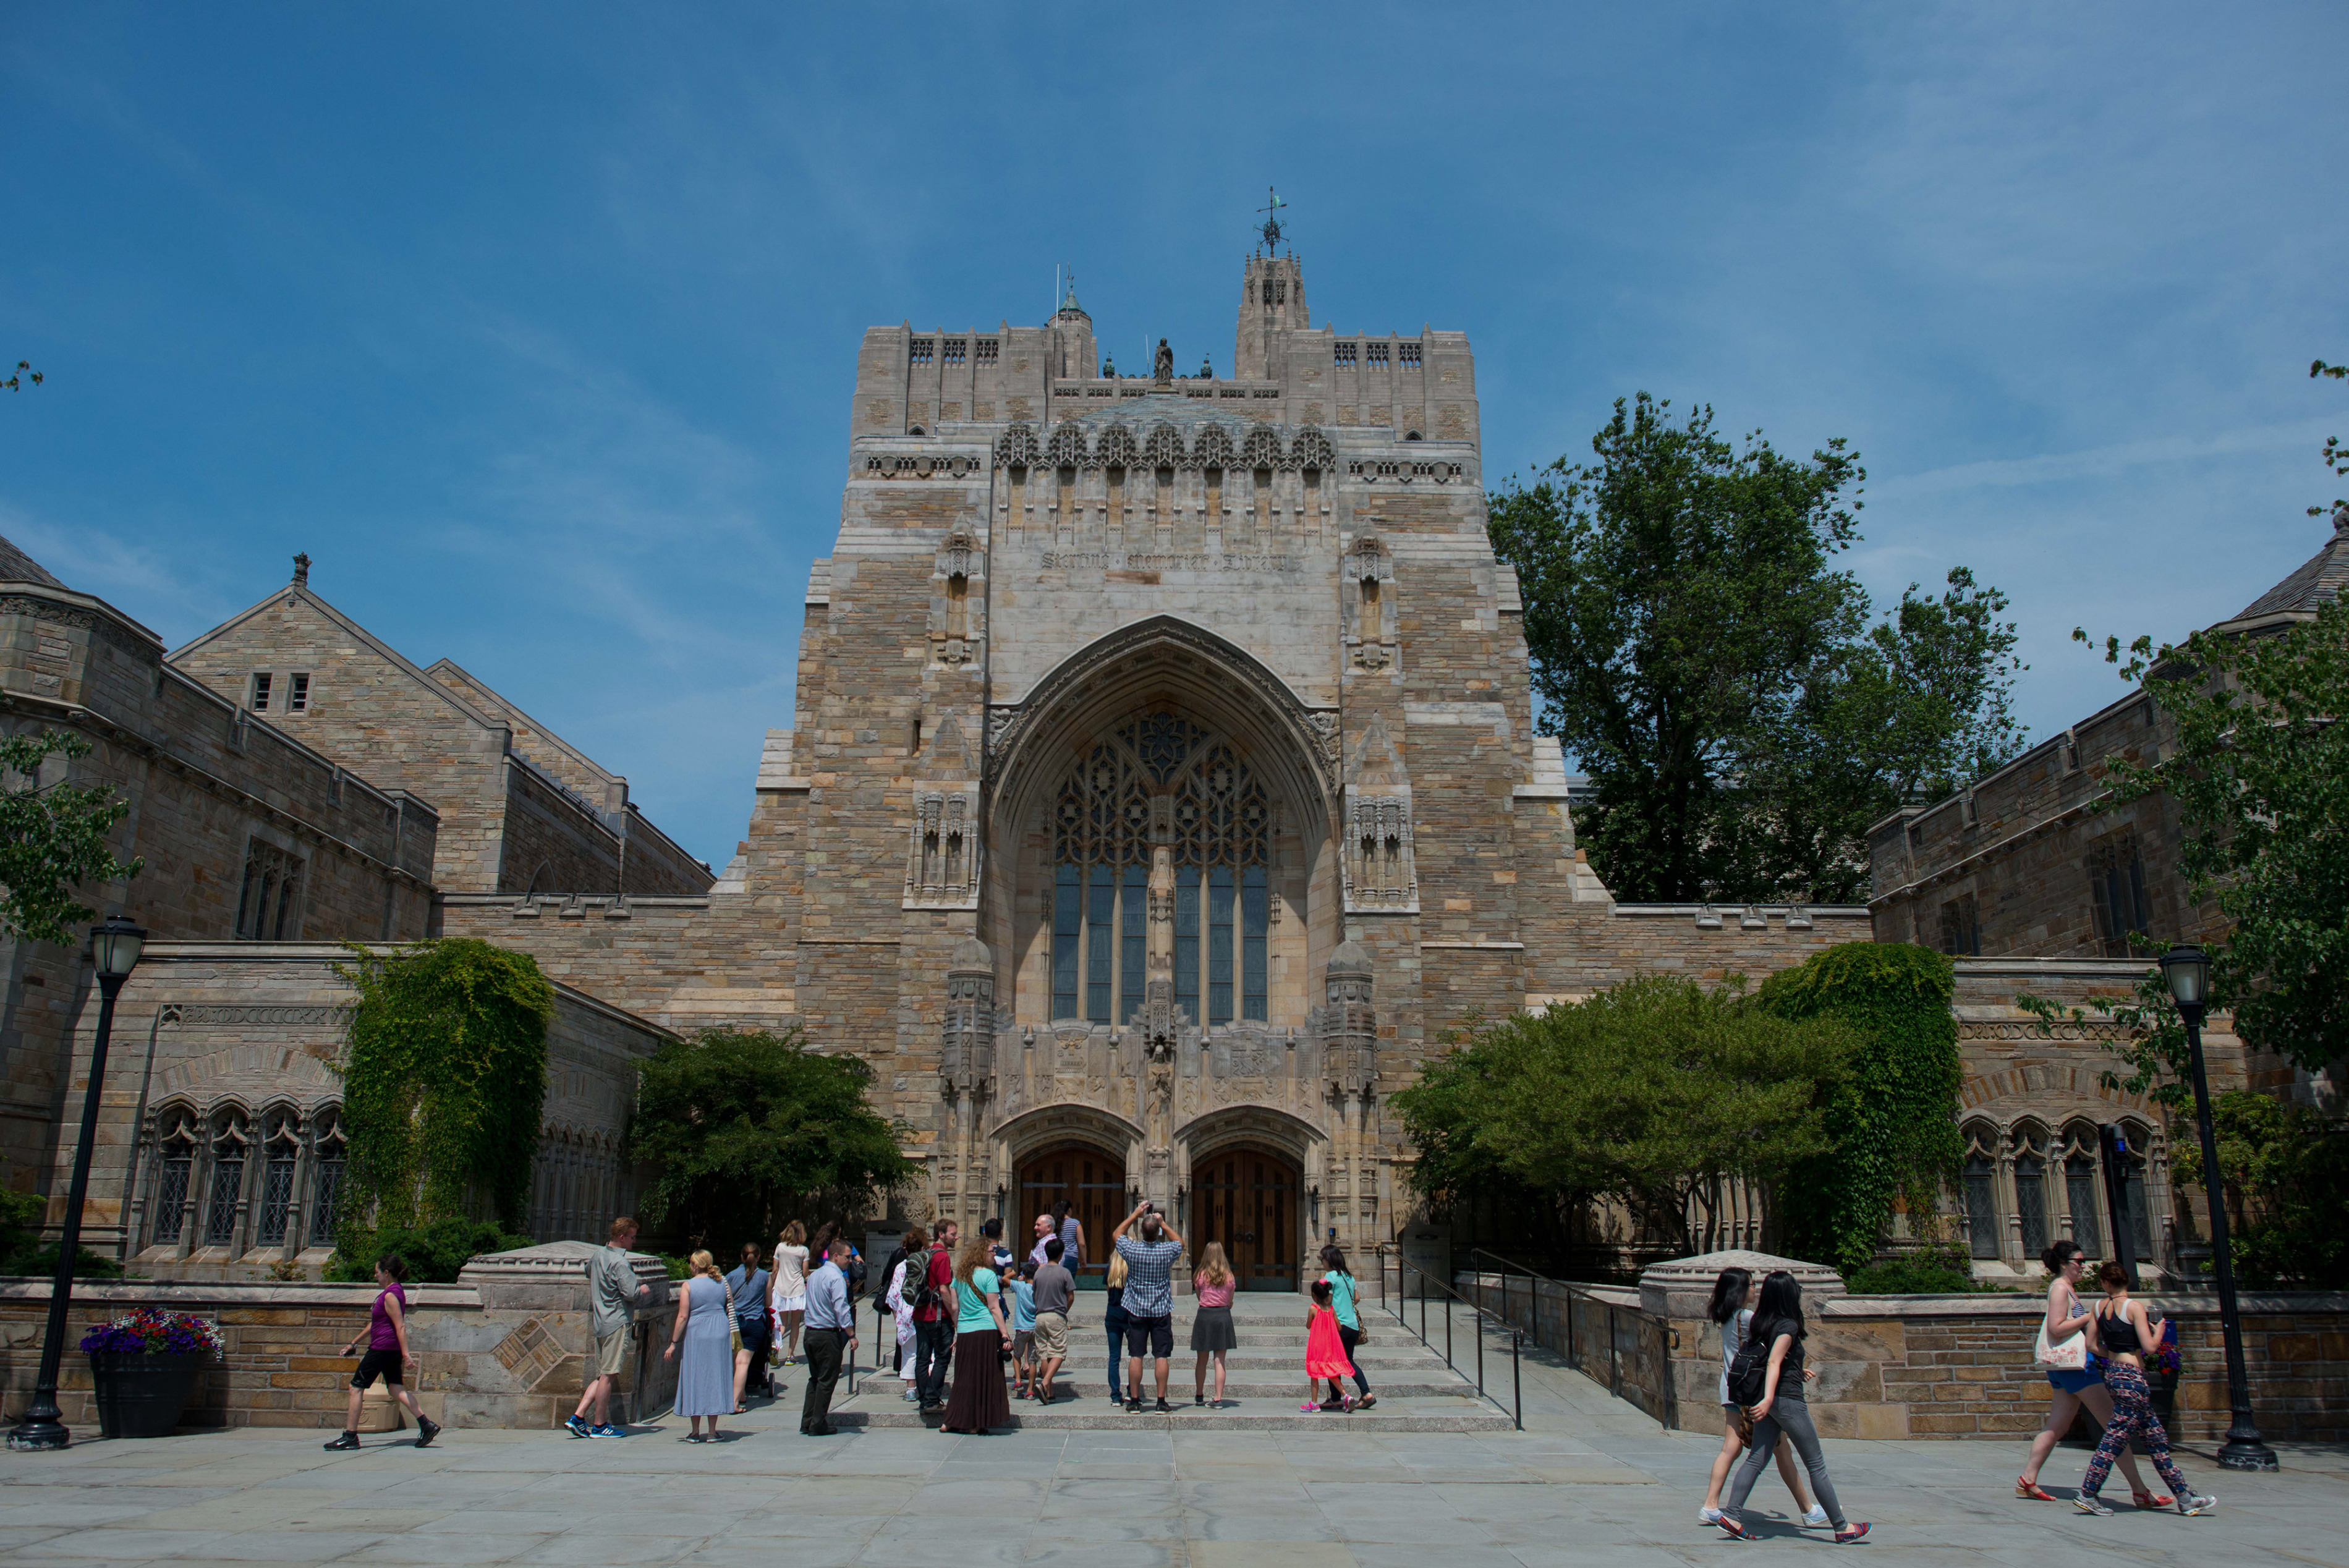 A tour group makes a stop at the Sterling Memorial Library on the Yale University campus in New Haven, Conn., on June 12, 2015.